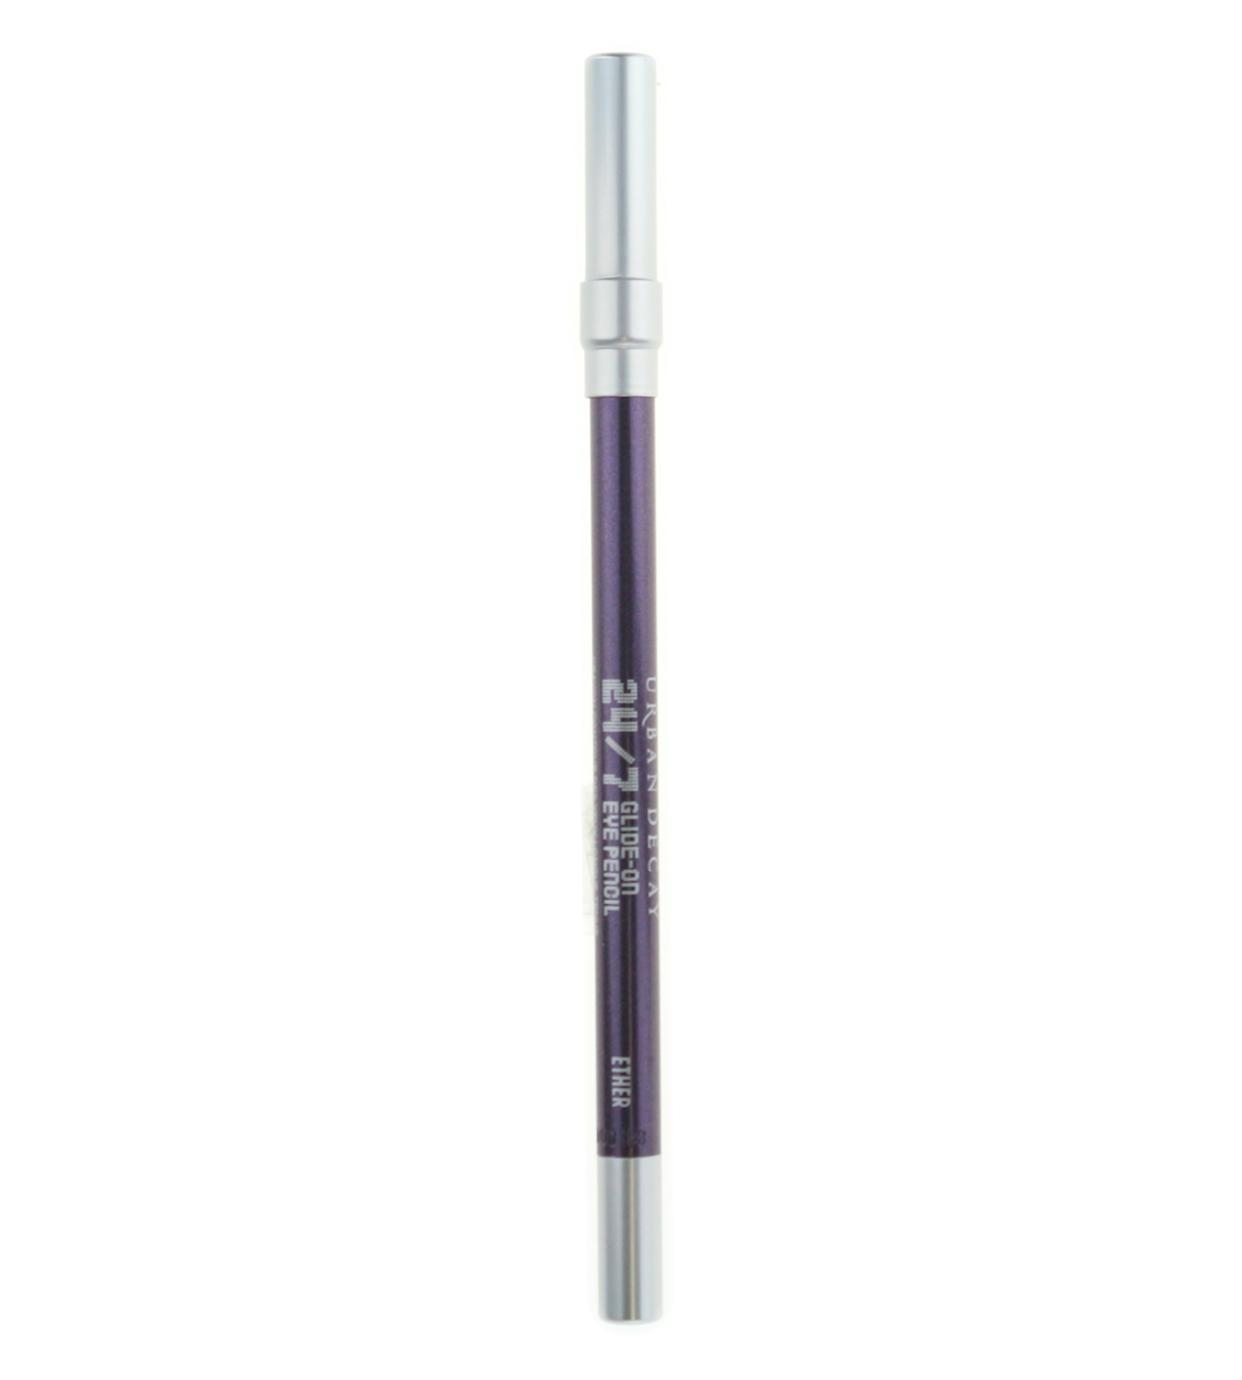 Urban Decay 24/7 Glide-On Eye Pencil (Walmart / Walmart)